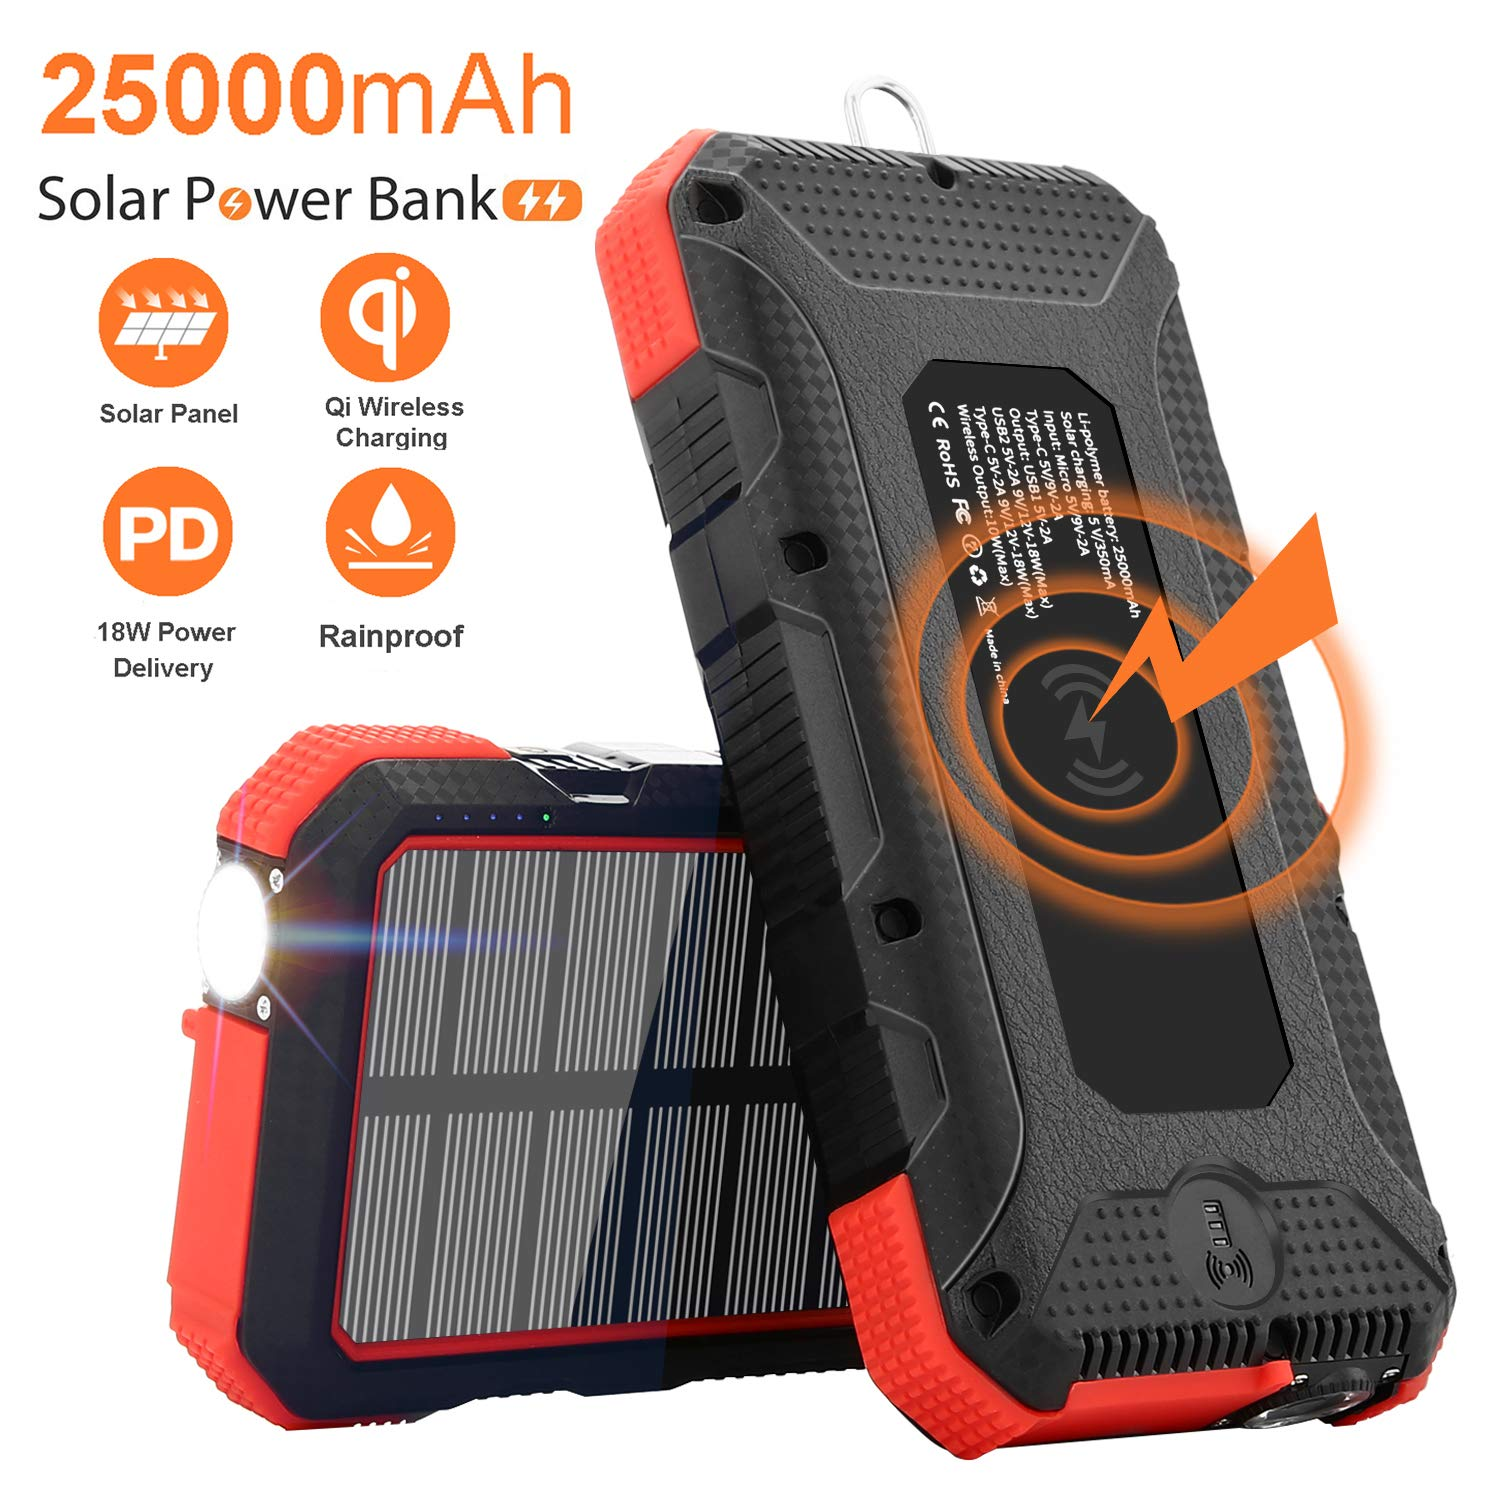 Solar Charger 25000mAh SendowTek 18W PD Power Bank USB C Charging 10W/7.5W Wireless Portable Phone Charger with 4 Outputs External Battery Pack Rainproof Flashlight Carabiner for Camping, Emergency by Sendowtek